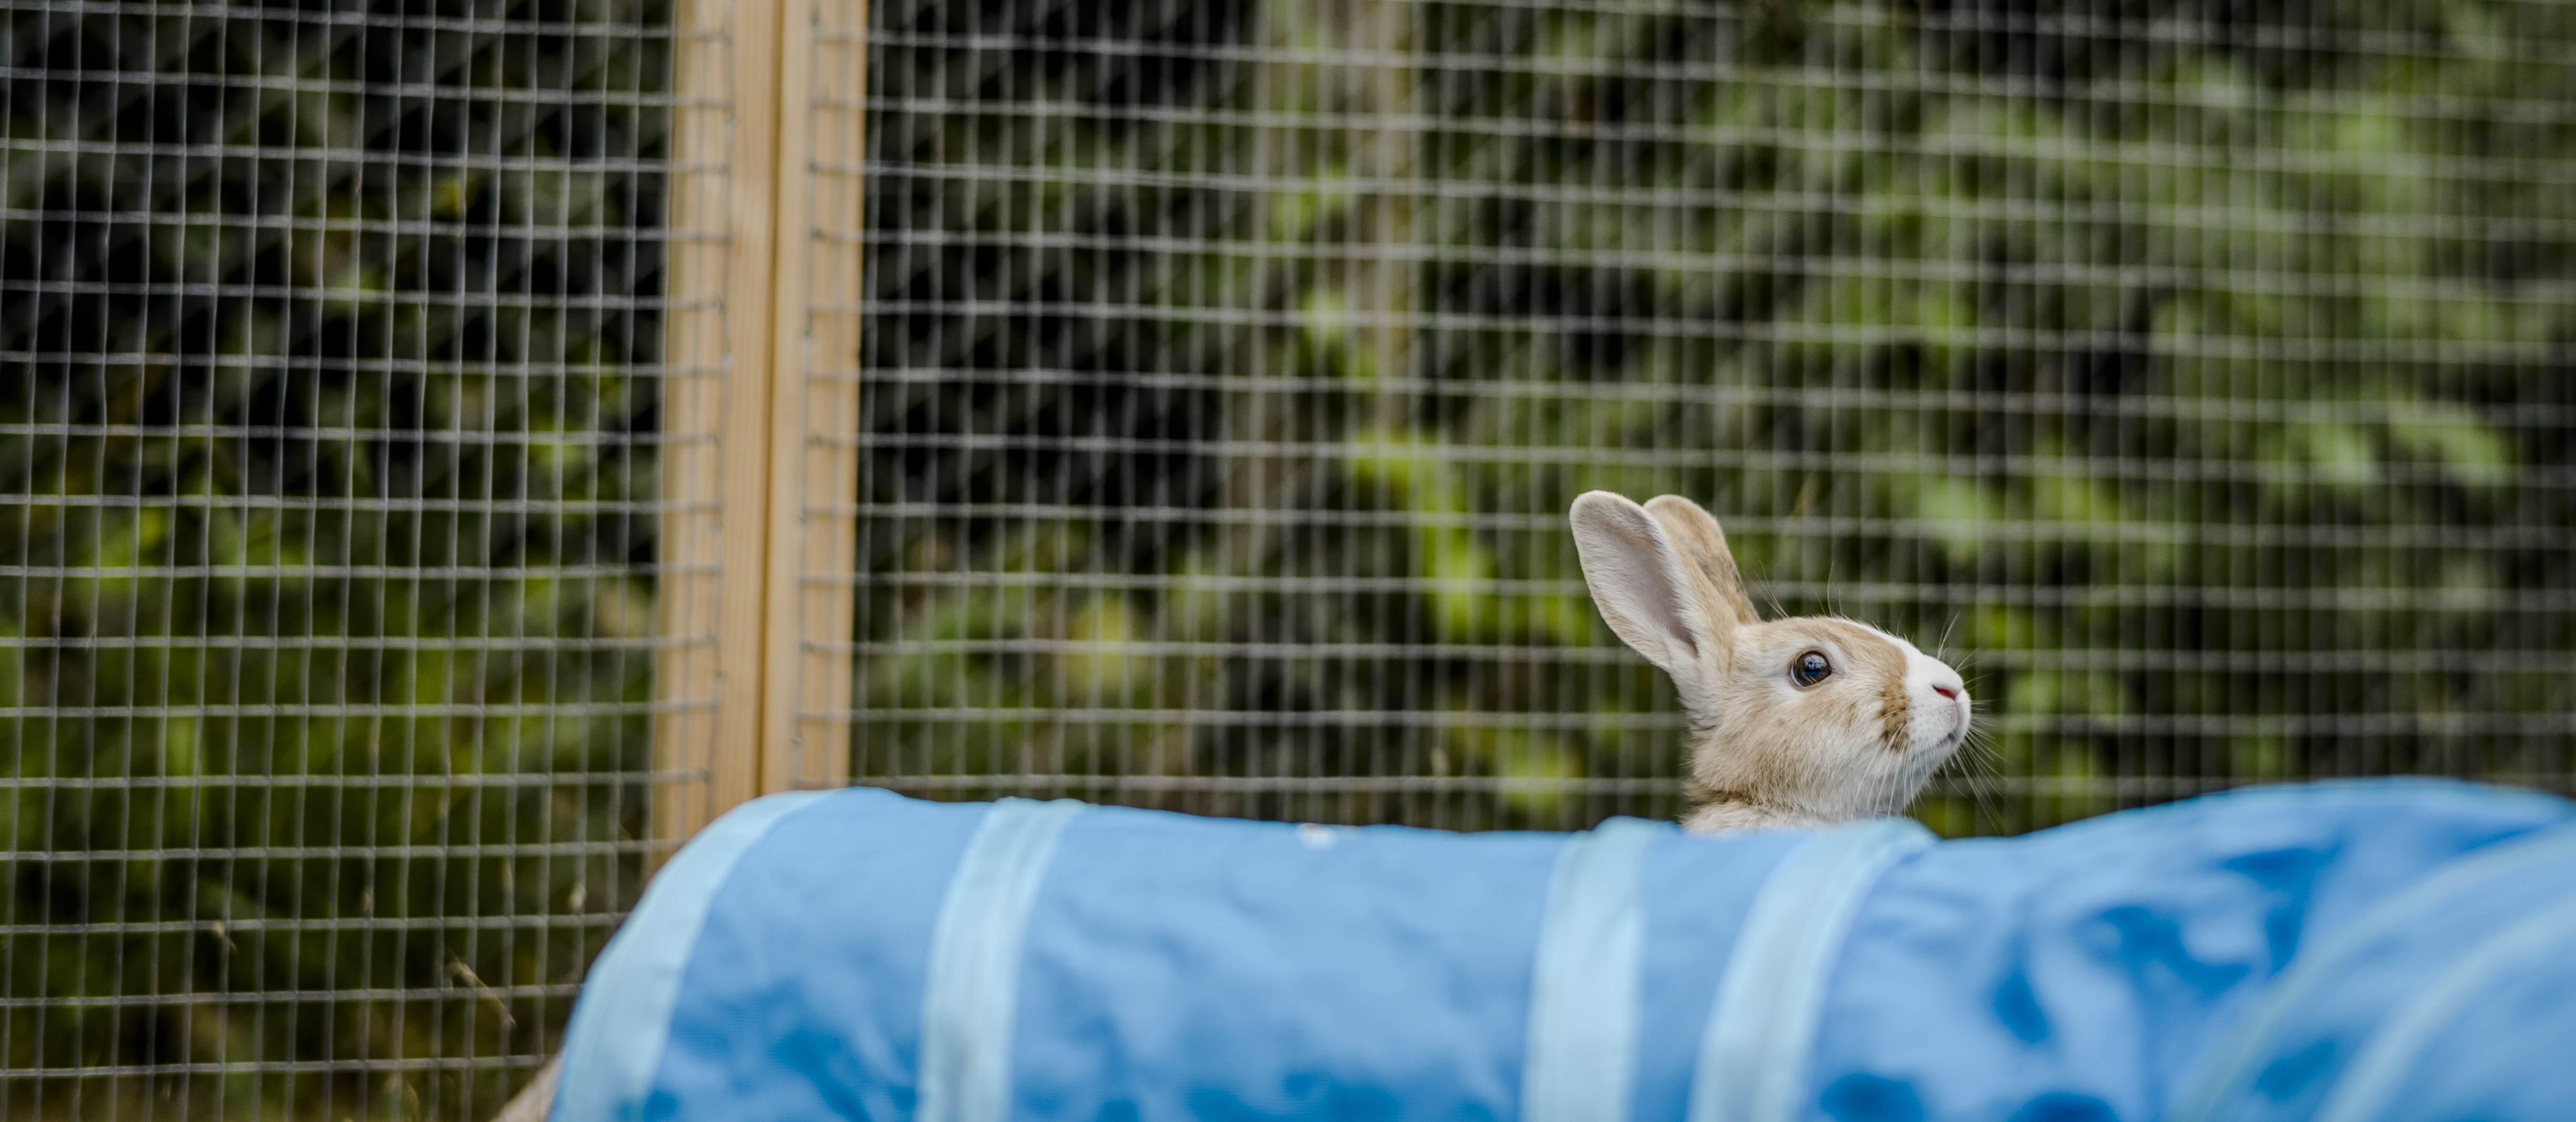 15 rabbit facts you probably didn't know! | Blue Cross